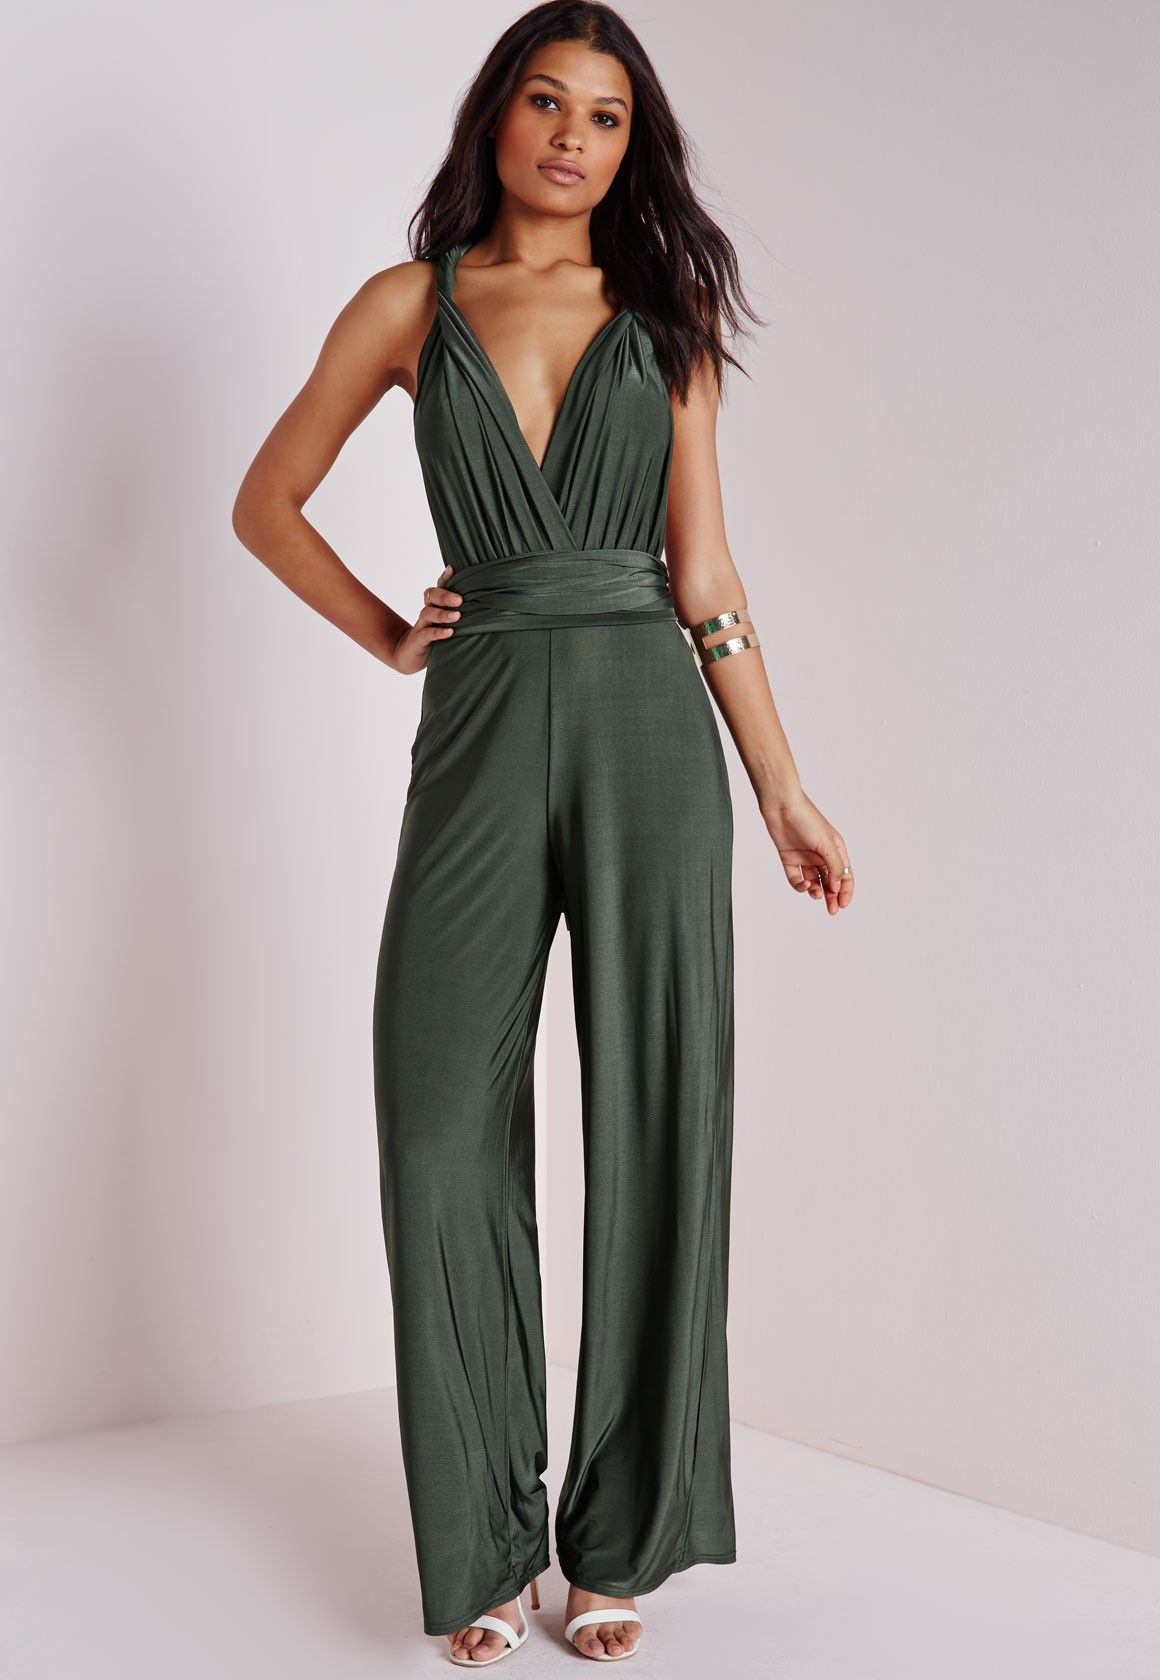 defafe5cc34 Missguided - Do It Any Way Multiway Jumpsuit Navy